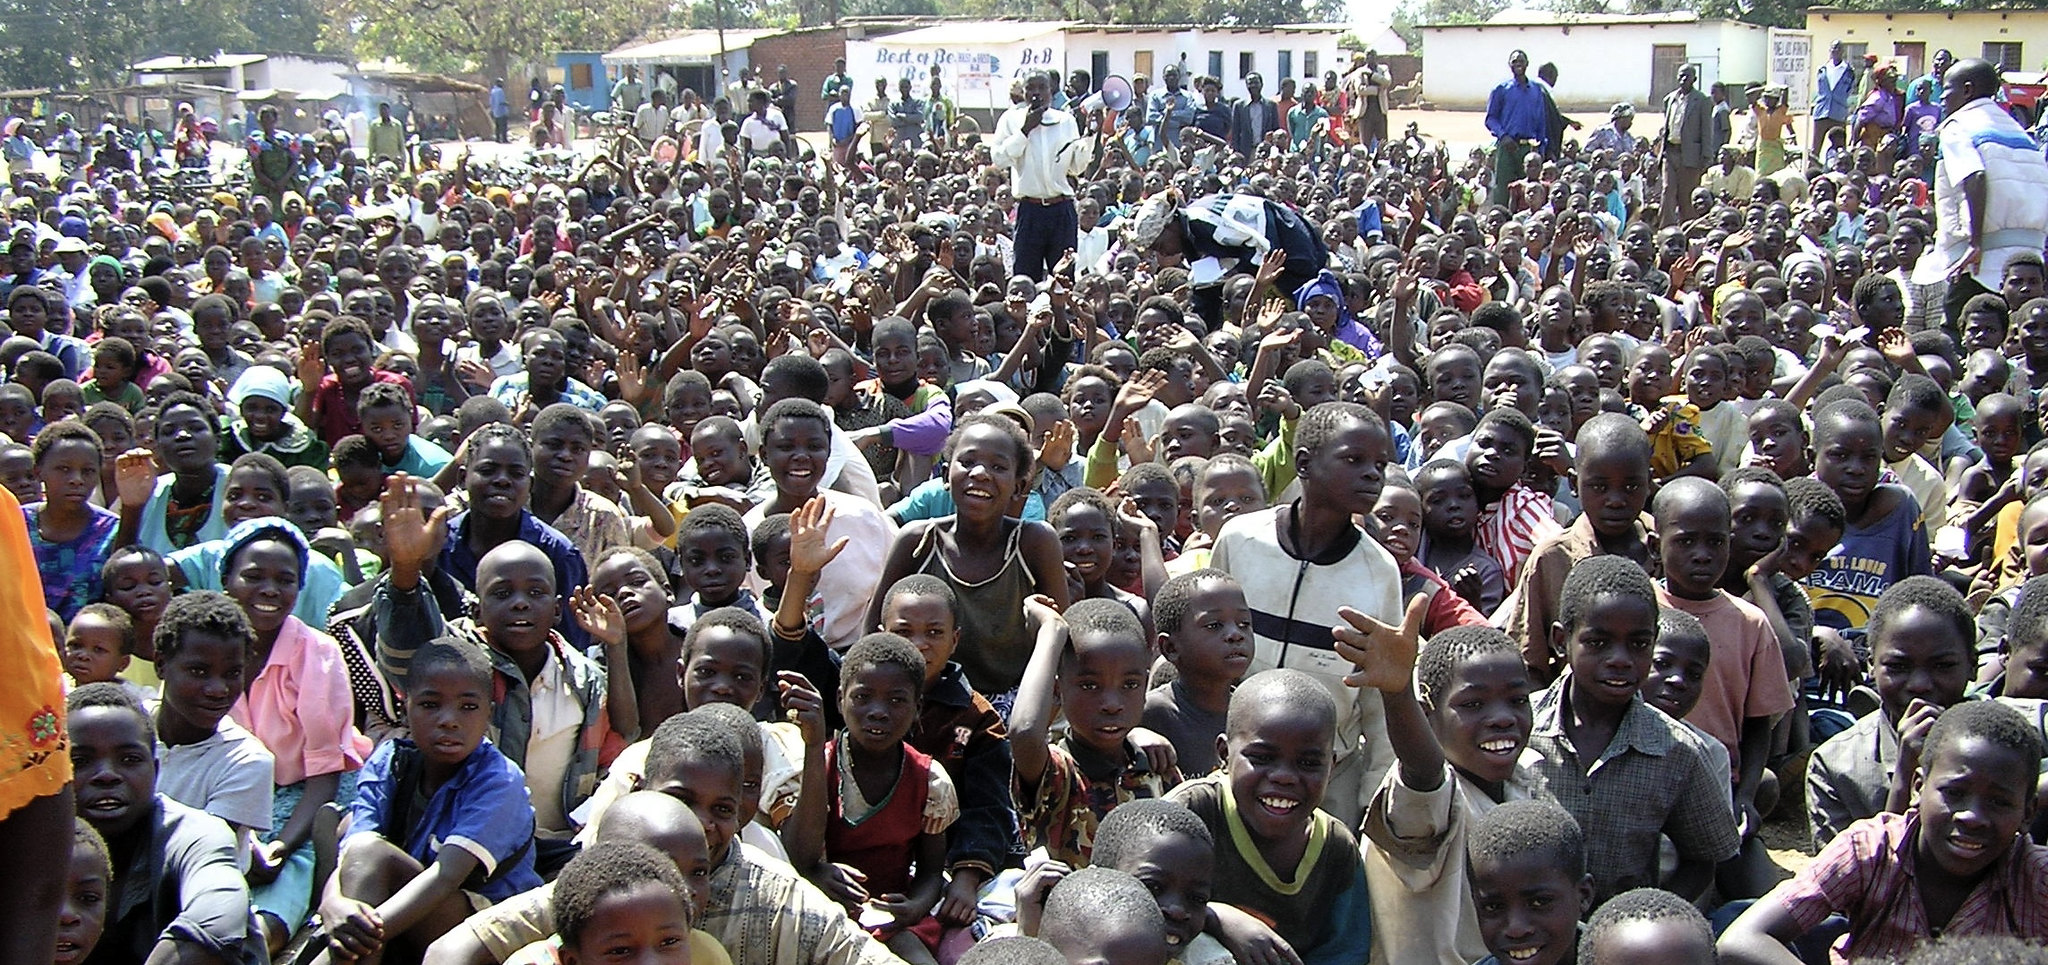 portion of the 5,000 orphan children gathered at the Mponela Trading Center a few years ago to receive food during the intense famine